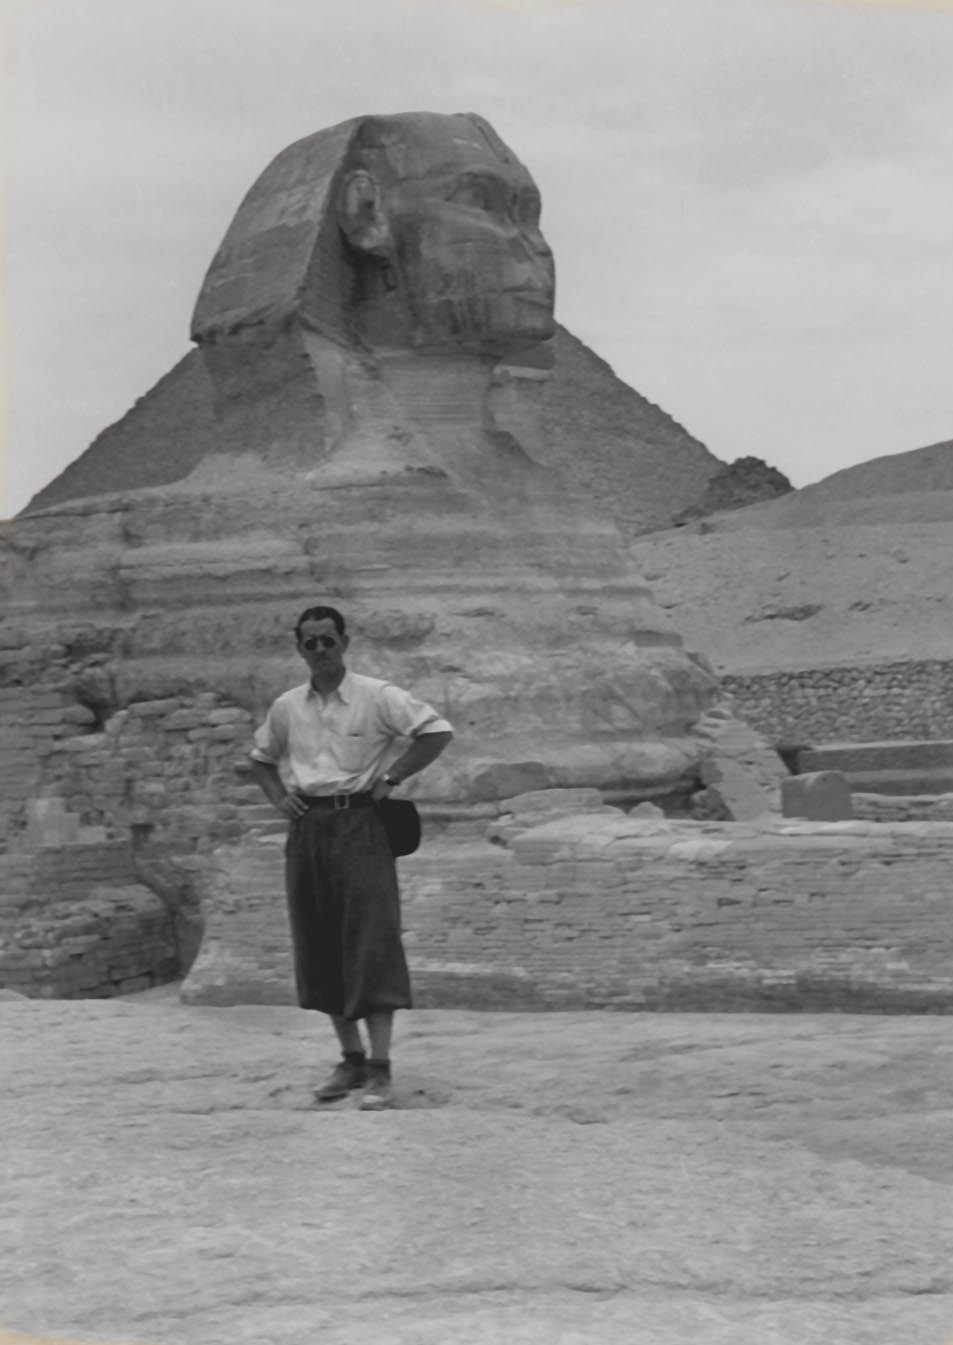 In 1936 he visited Egypt.